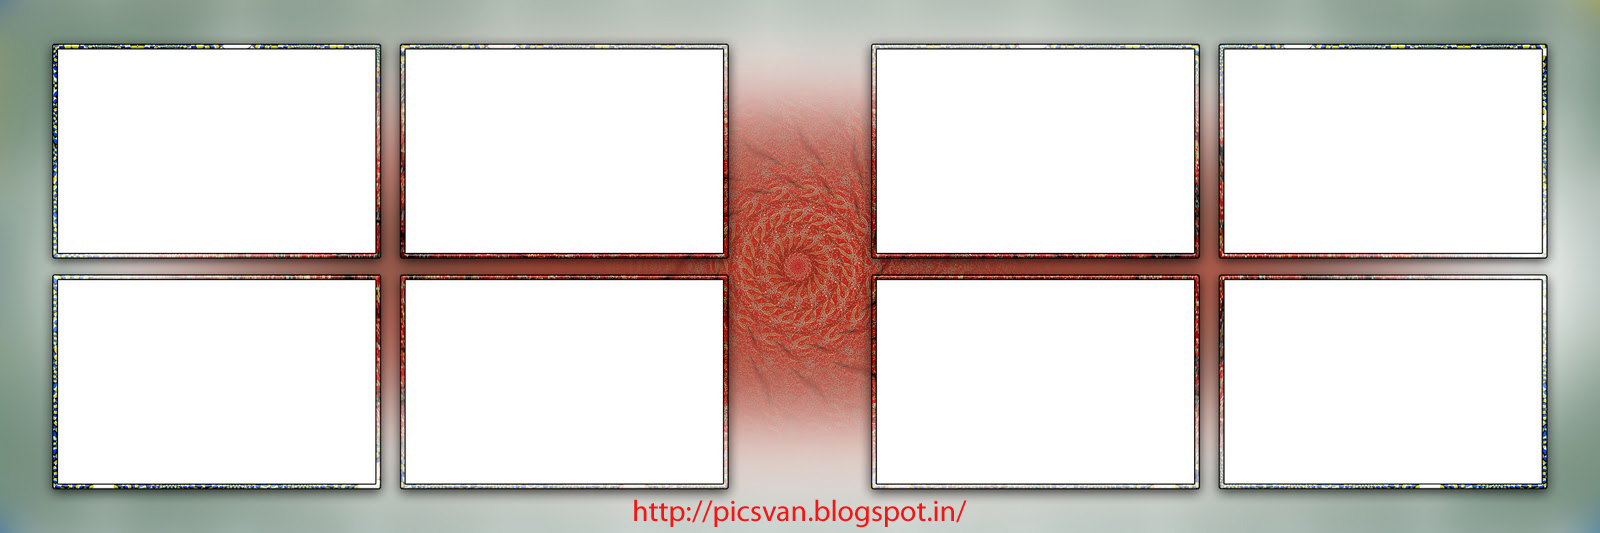 Latest Glasses Frame Designs : FREE-PHOTOSHOP BACKGROUNDS-HIGH-RESOLUTION WALLPAPERS ...